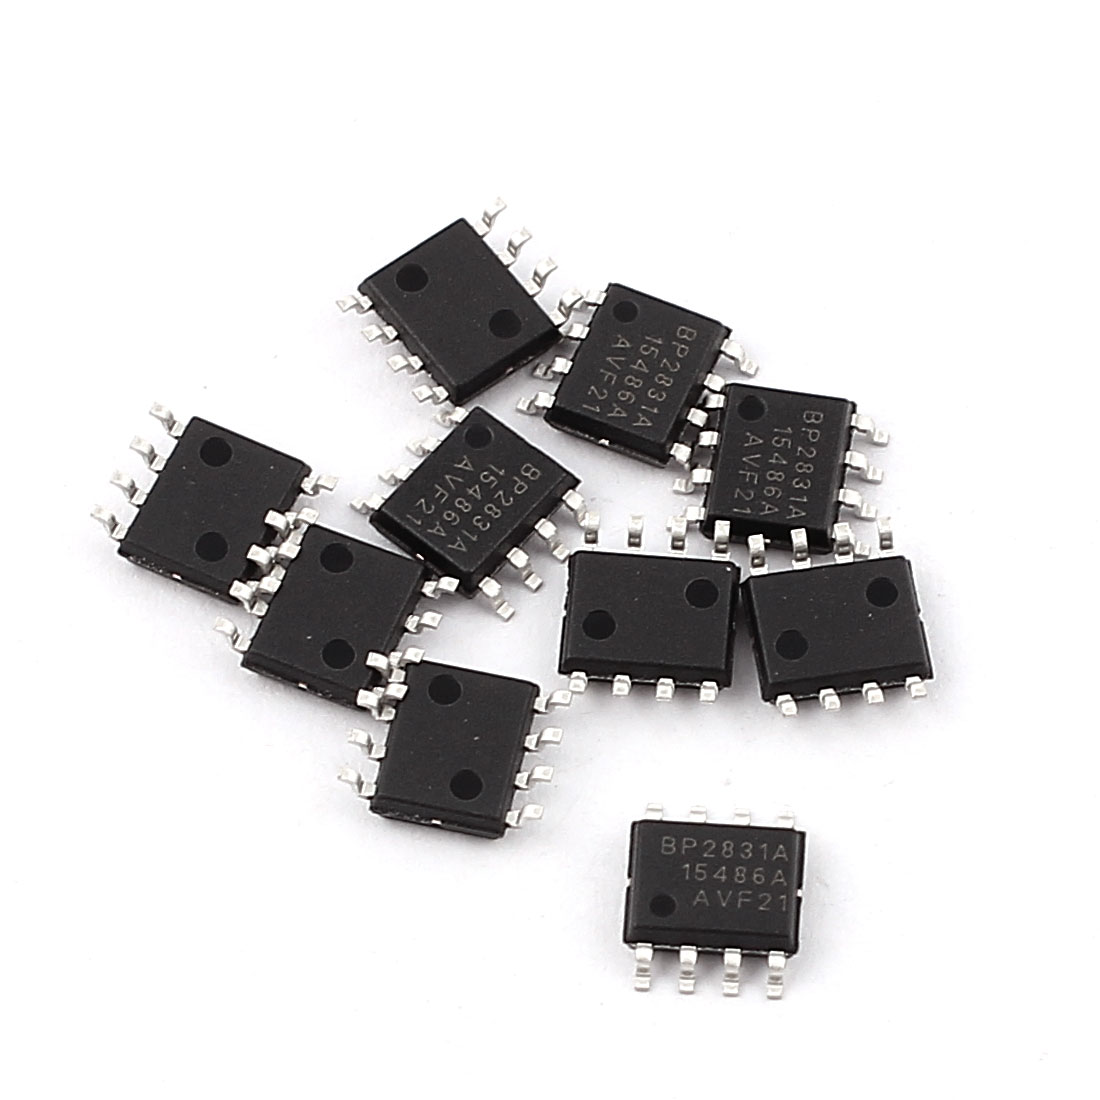 10Pcs BP2831A SOP-8 SMD SMT Type PCB Surface Mount LED Driver Circuit Module Integrated Circuit IC Chip